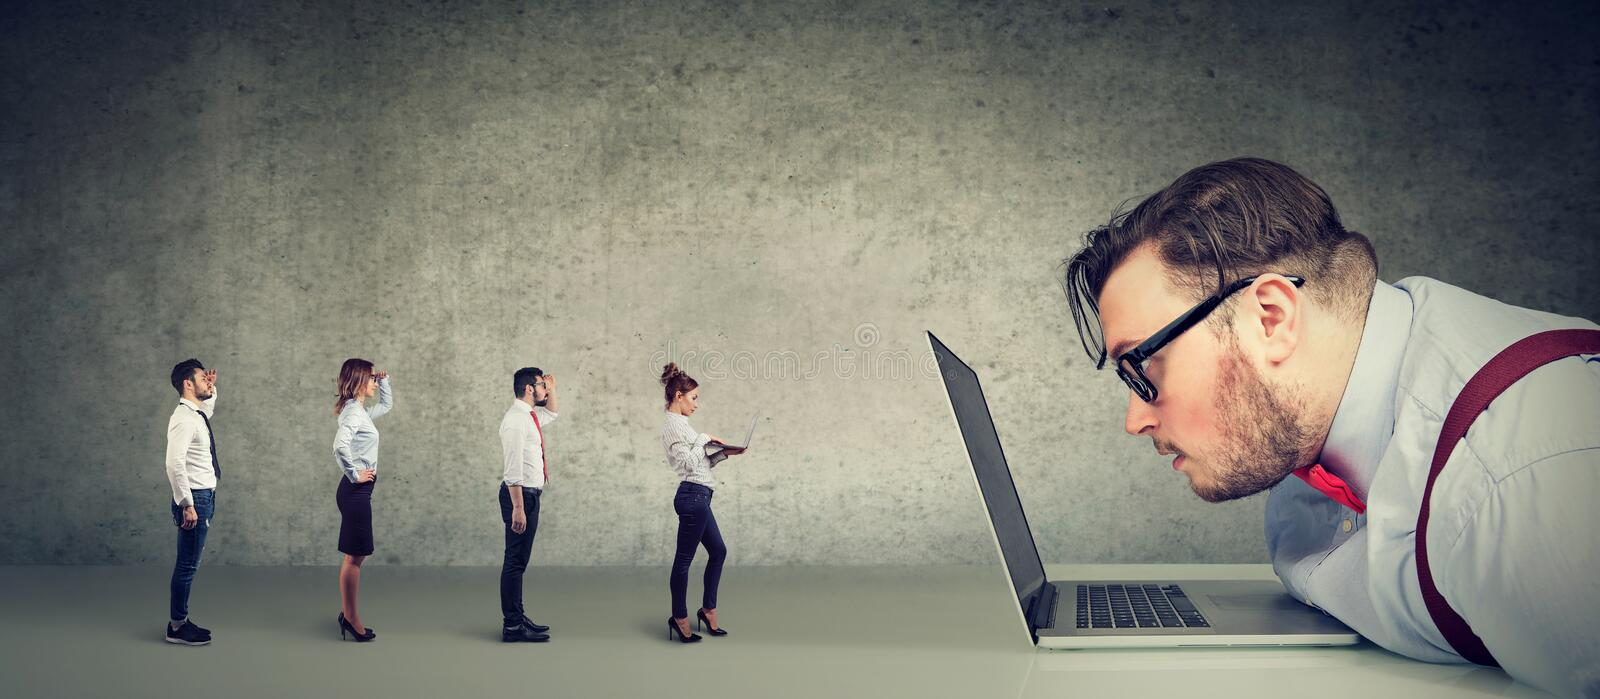 Curious businessman looking at laptop analyzing group of businesspeople applying online for a job royalty free stock images